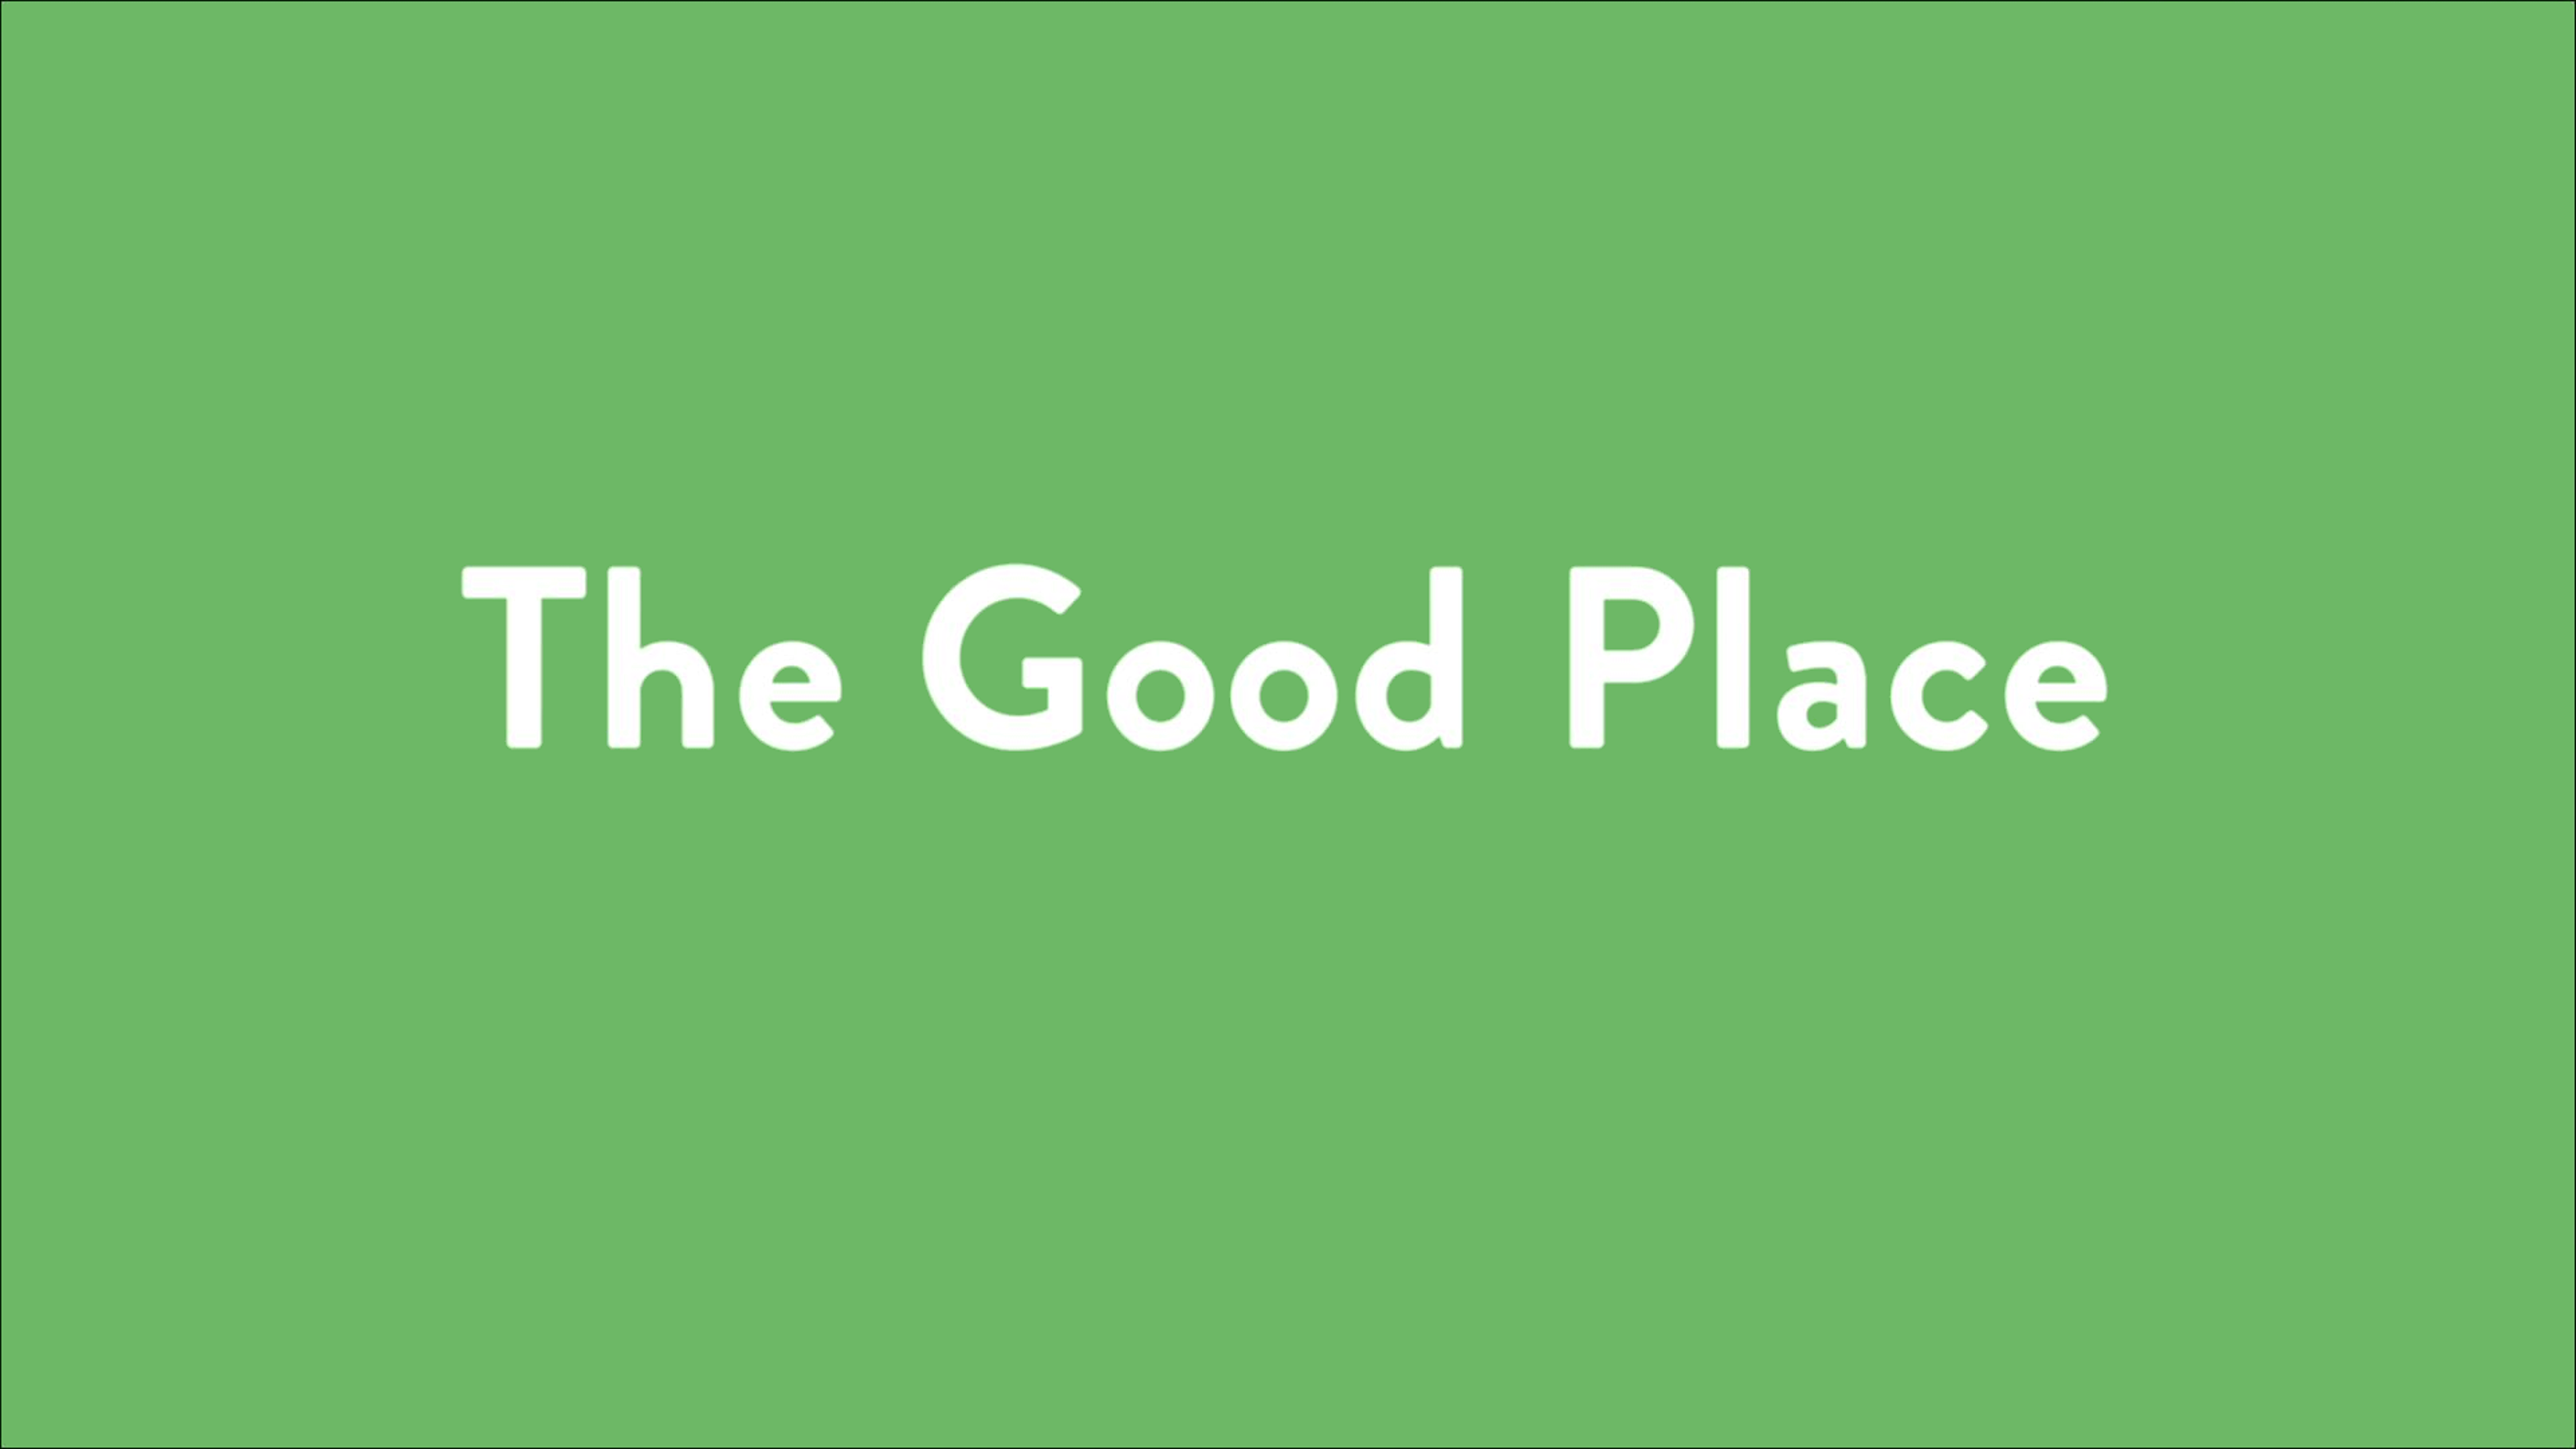 List Of The Good Place Episodes Wikipedia